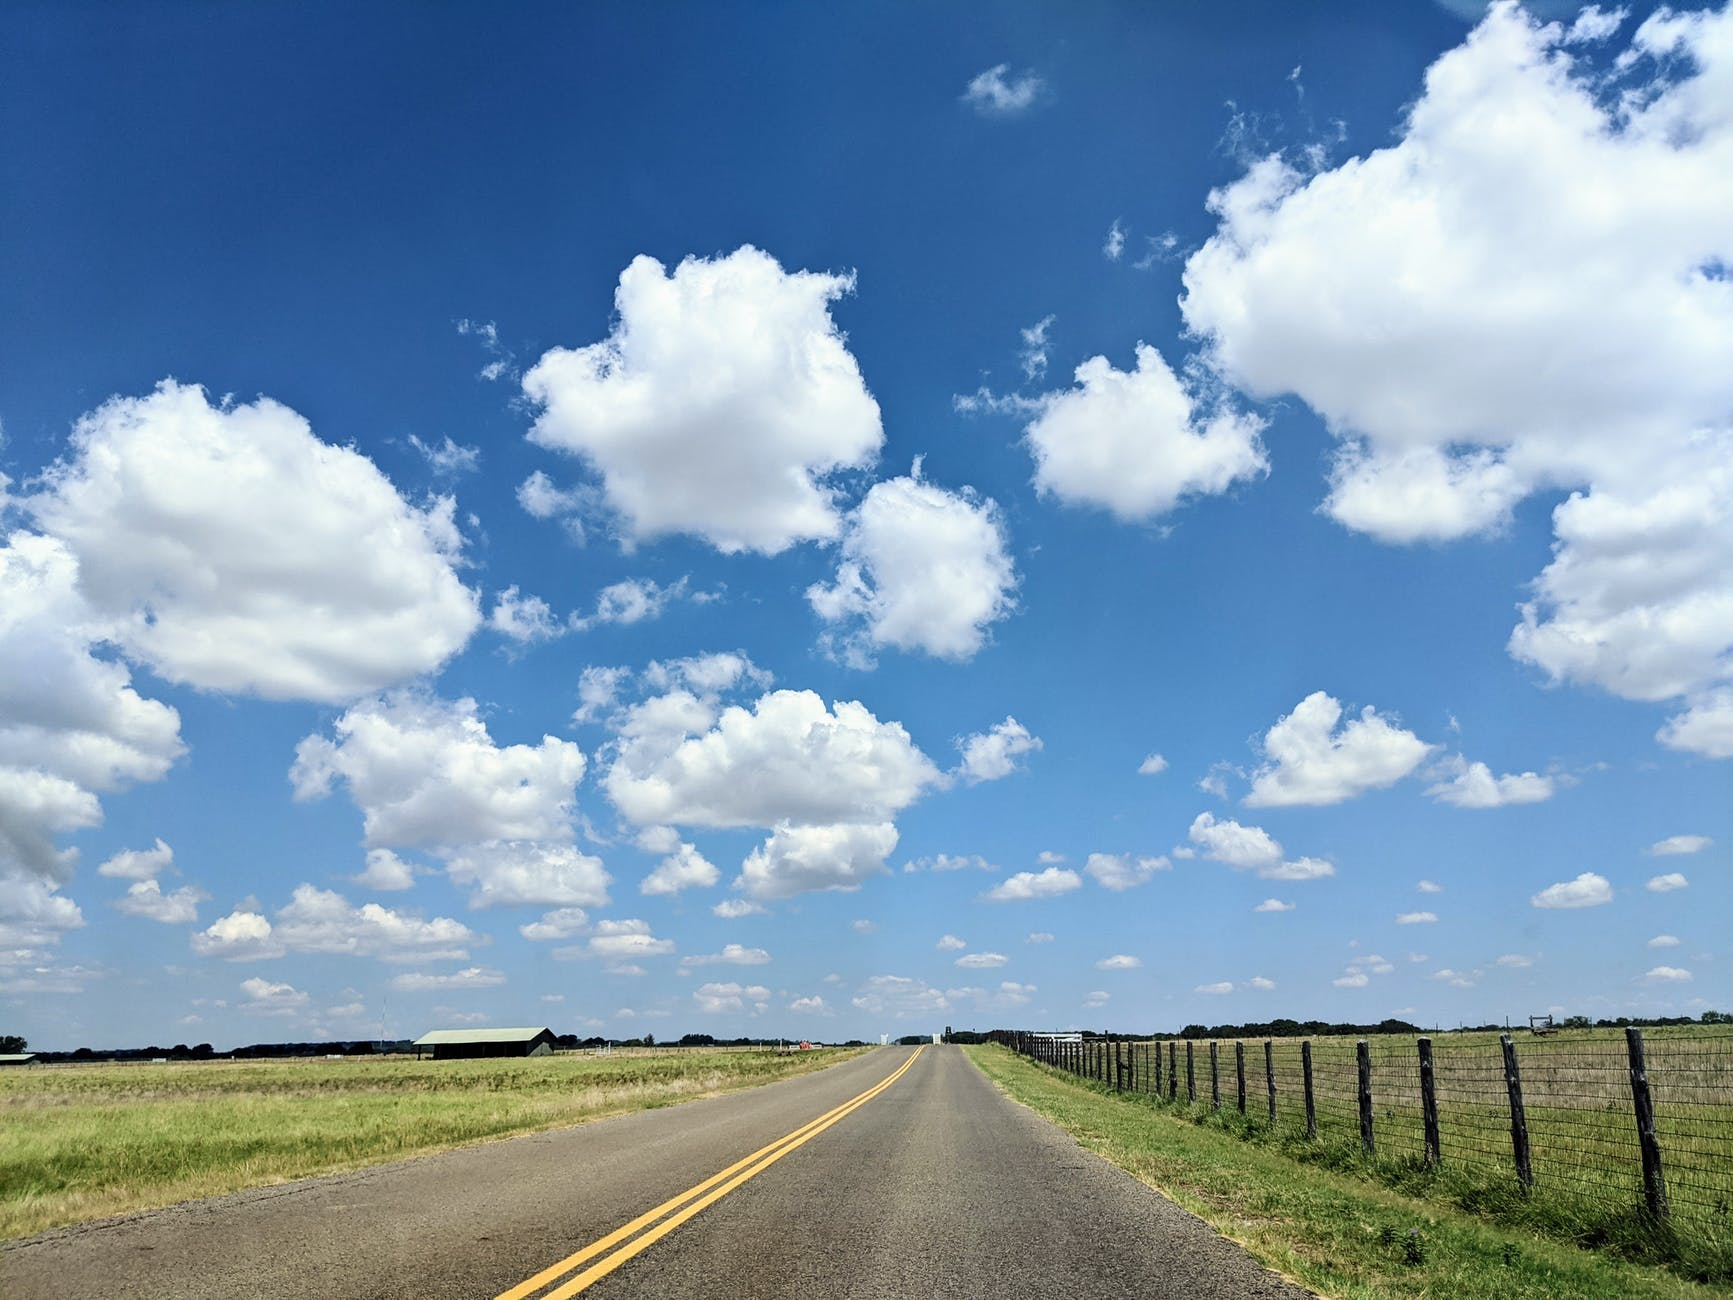 A highway somewhere on the Texas plains with a blue sky and a few clouds.